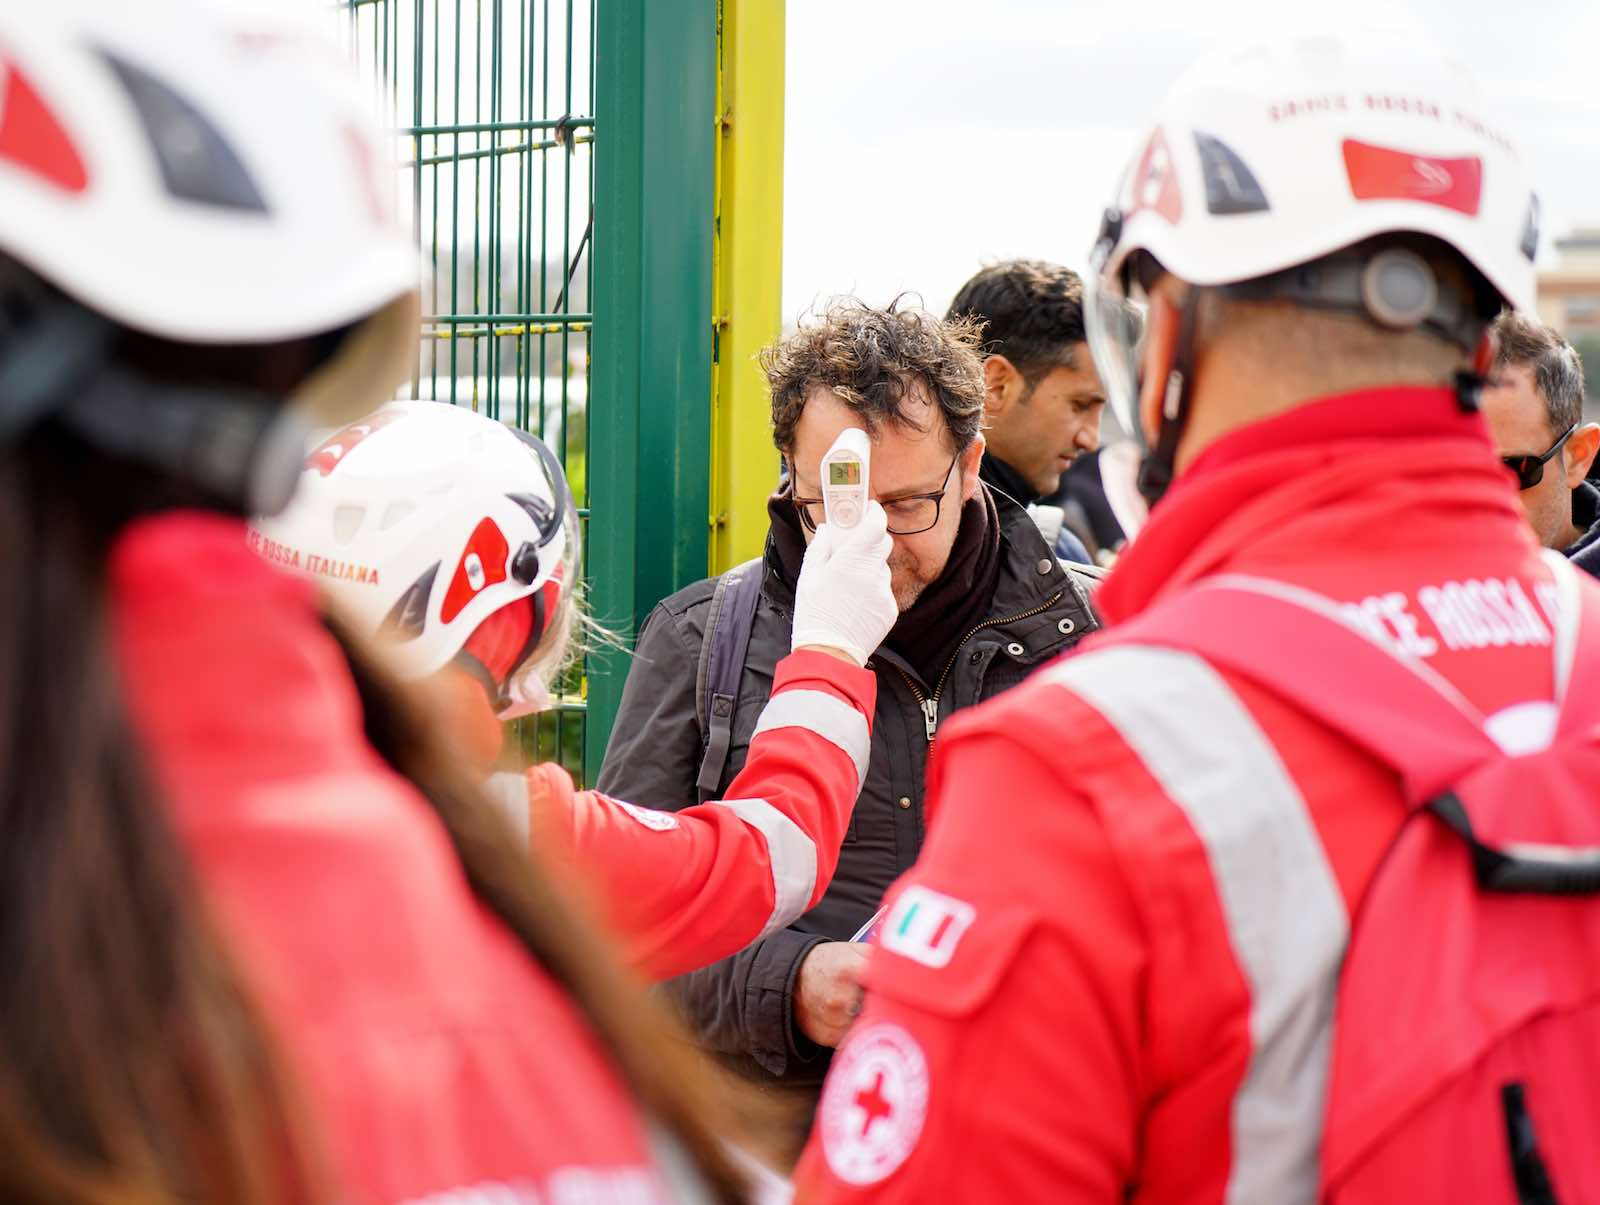 Health workers screening spectators before a soccer match in Lecce, Italy, 1 March (Gabriele Maricchiolo/NurPhoto via Getty Images)